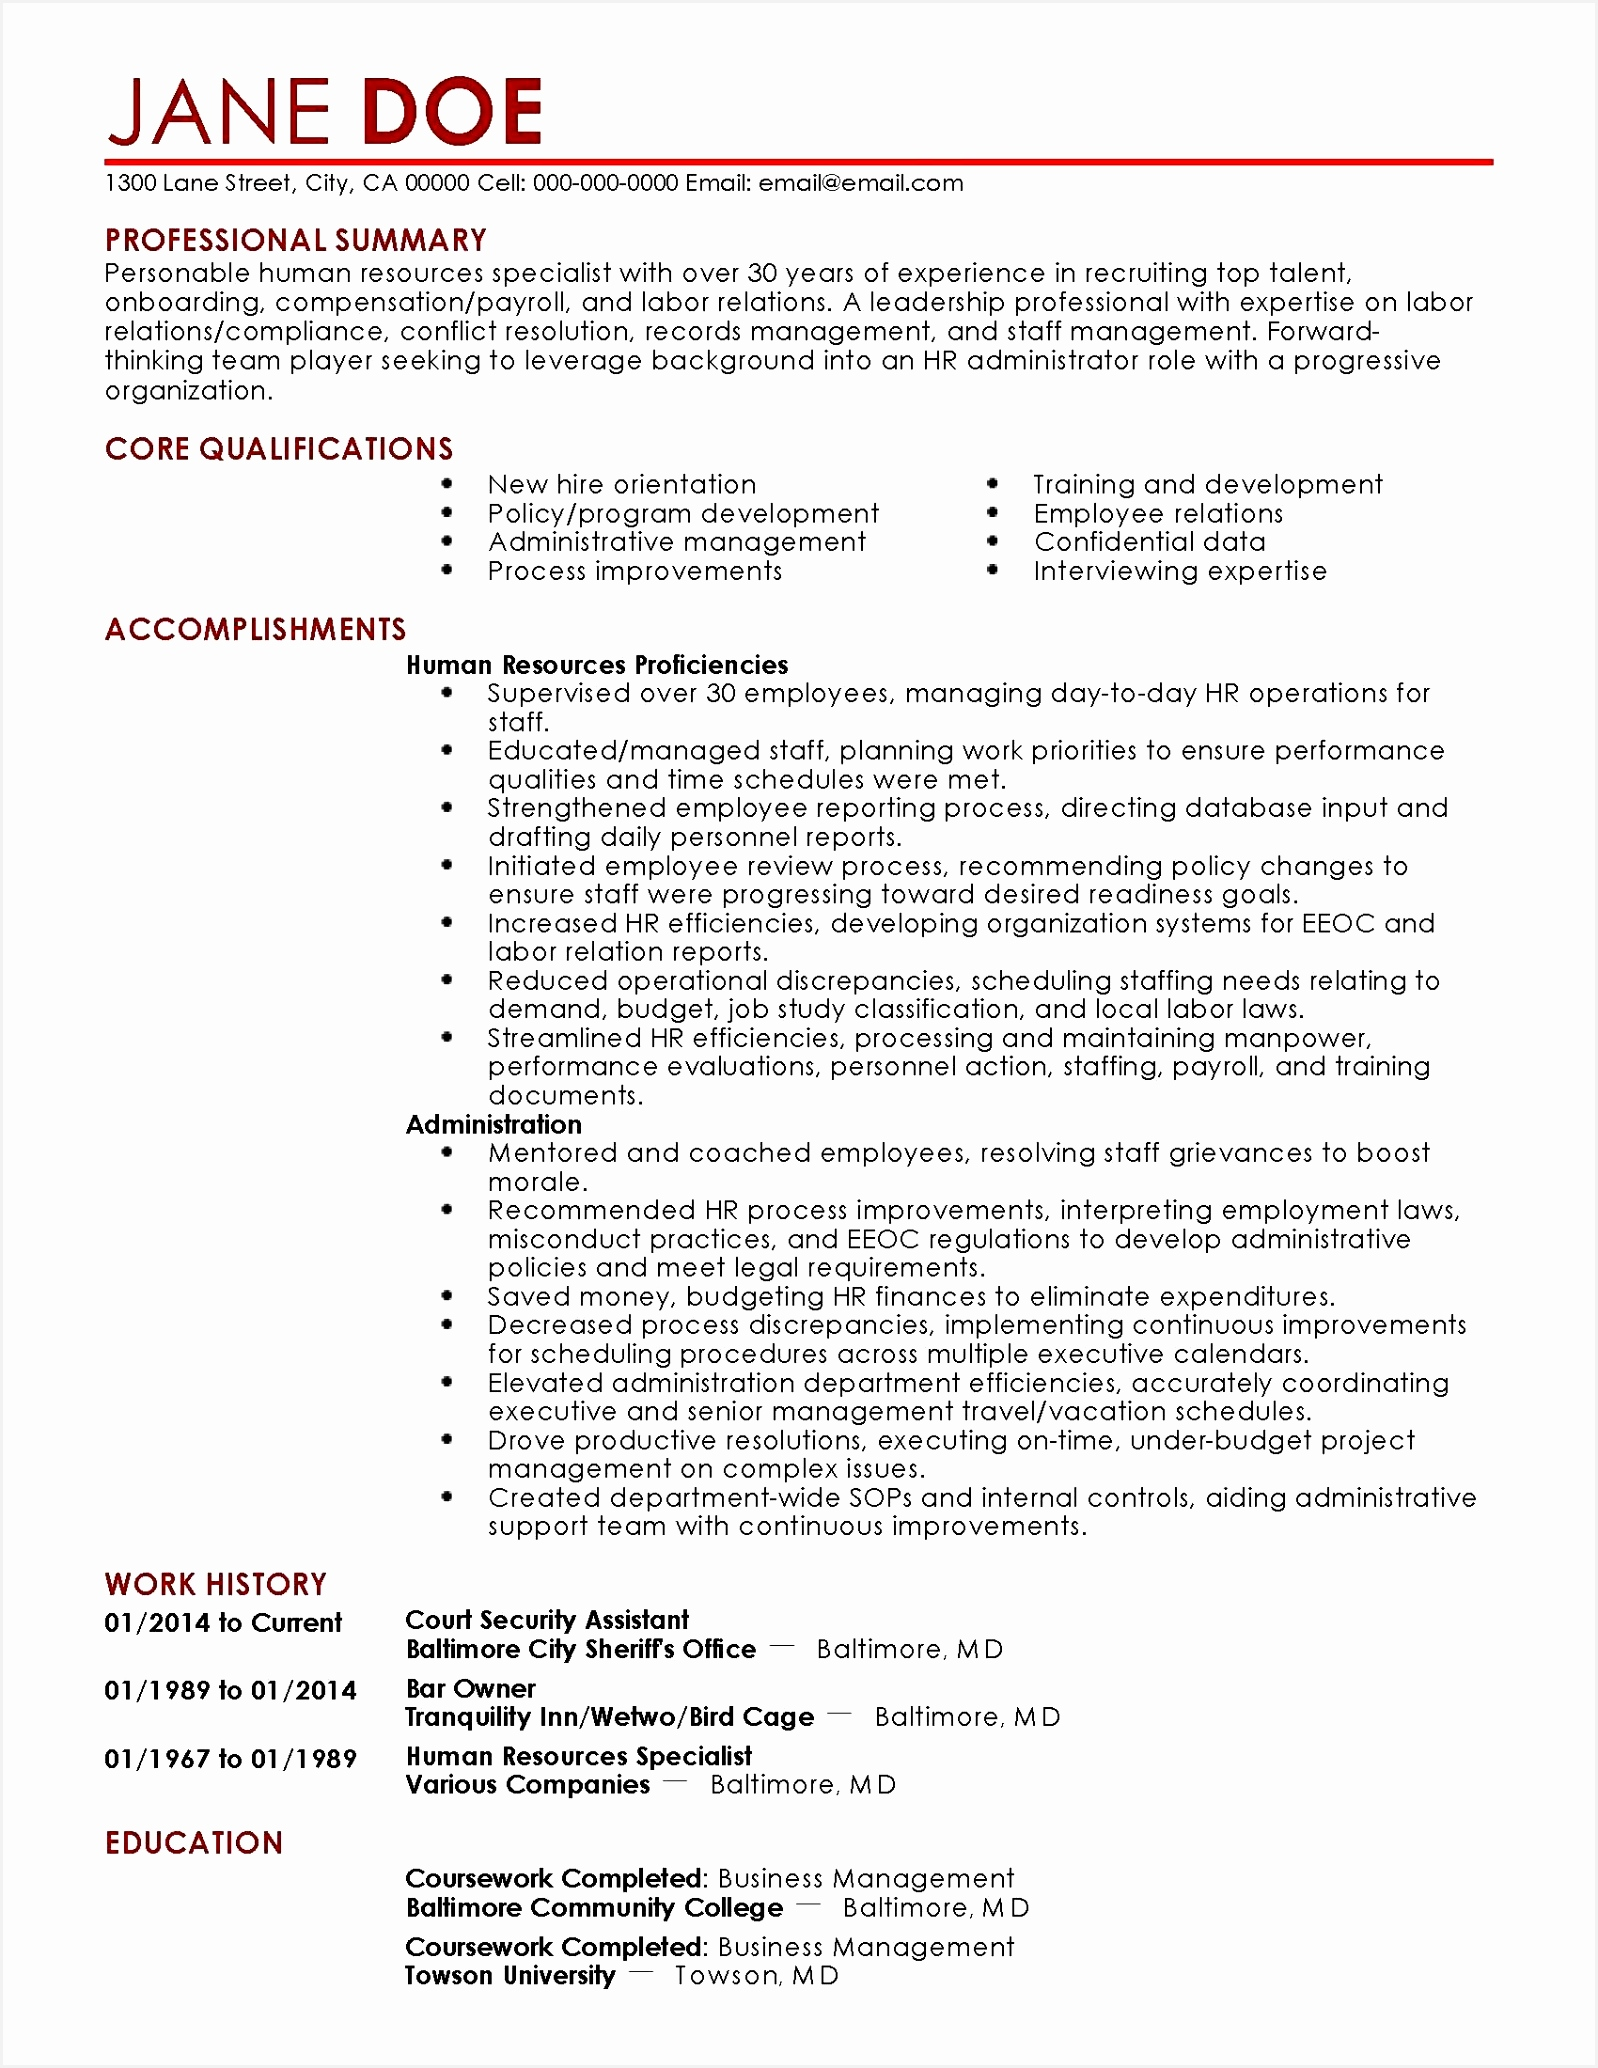 Medical assistant Resumes Inspirational Medical assistant Resumes New Medical Resumes 0d Bizmancan Medical assistant Resumes 206815980jxhh